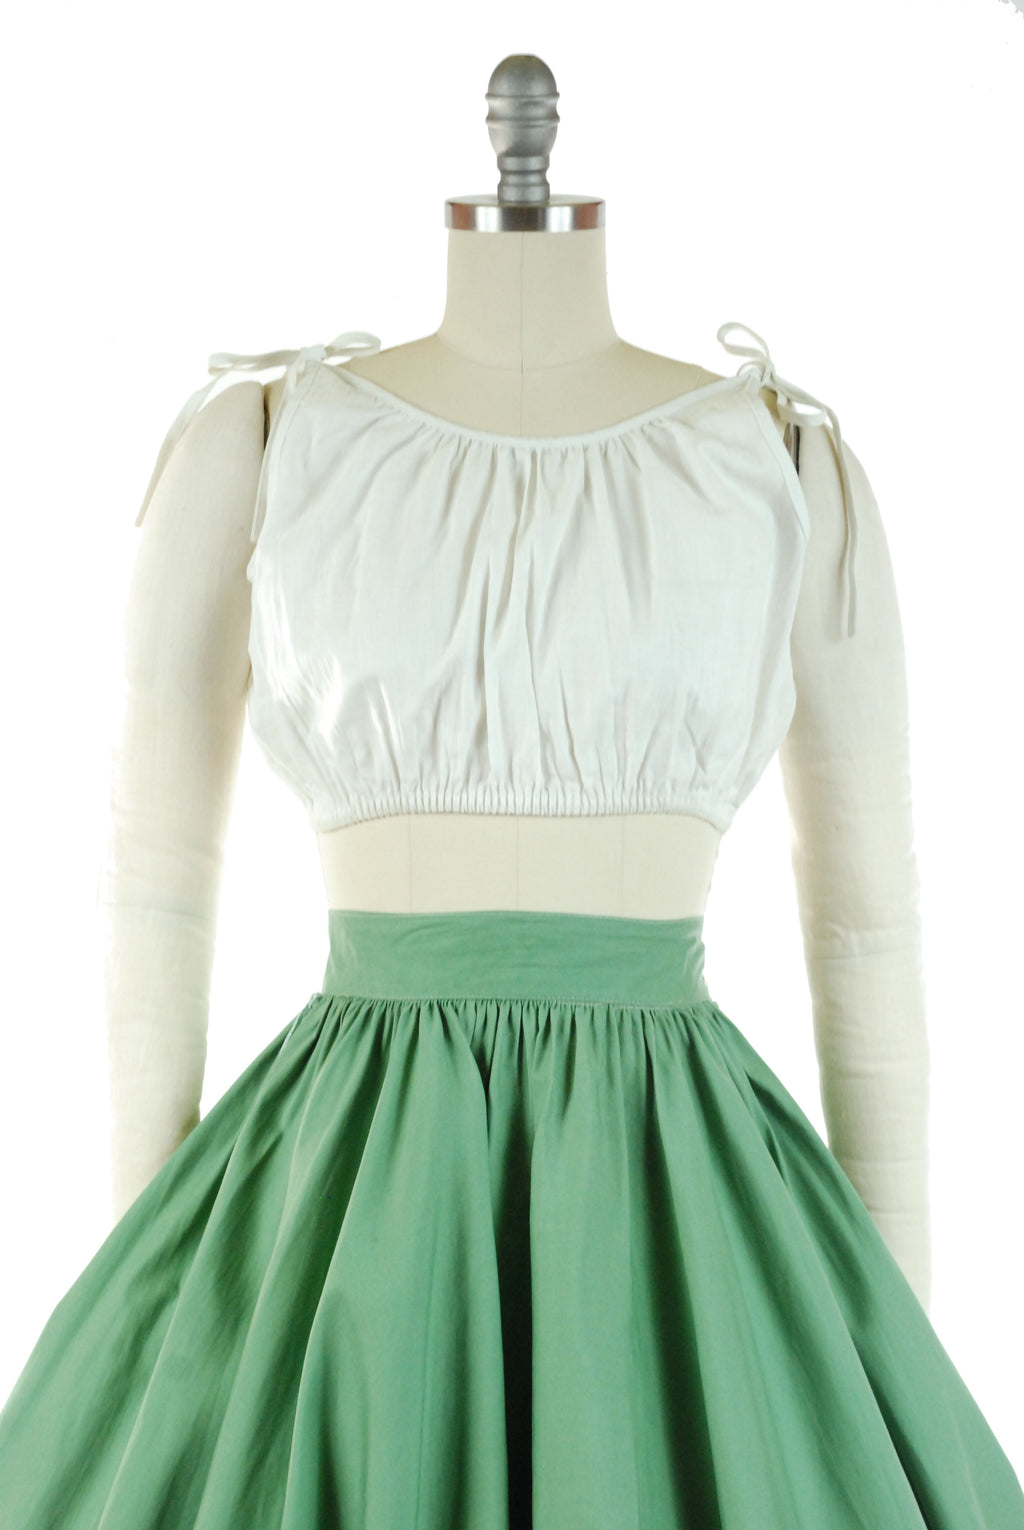 RARE 1950s White Cotton Midriff Style Sleeveless Peasant Top Blouse